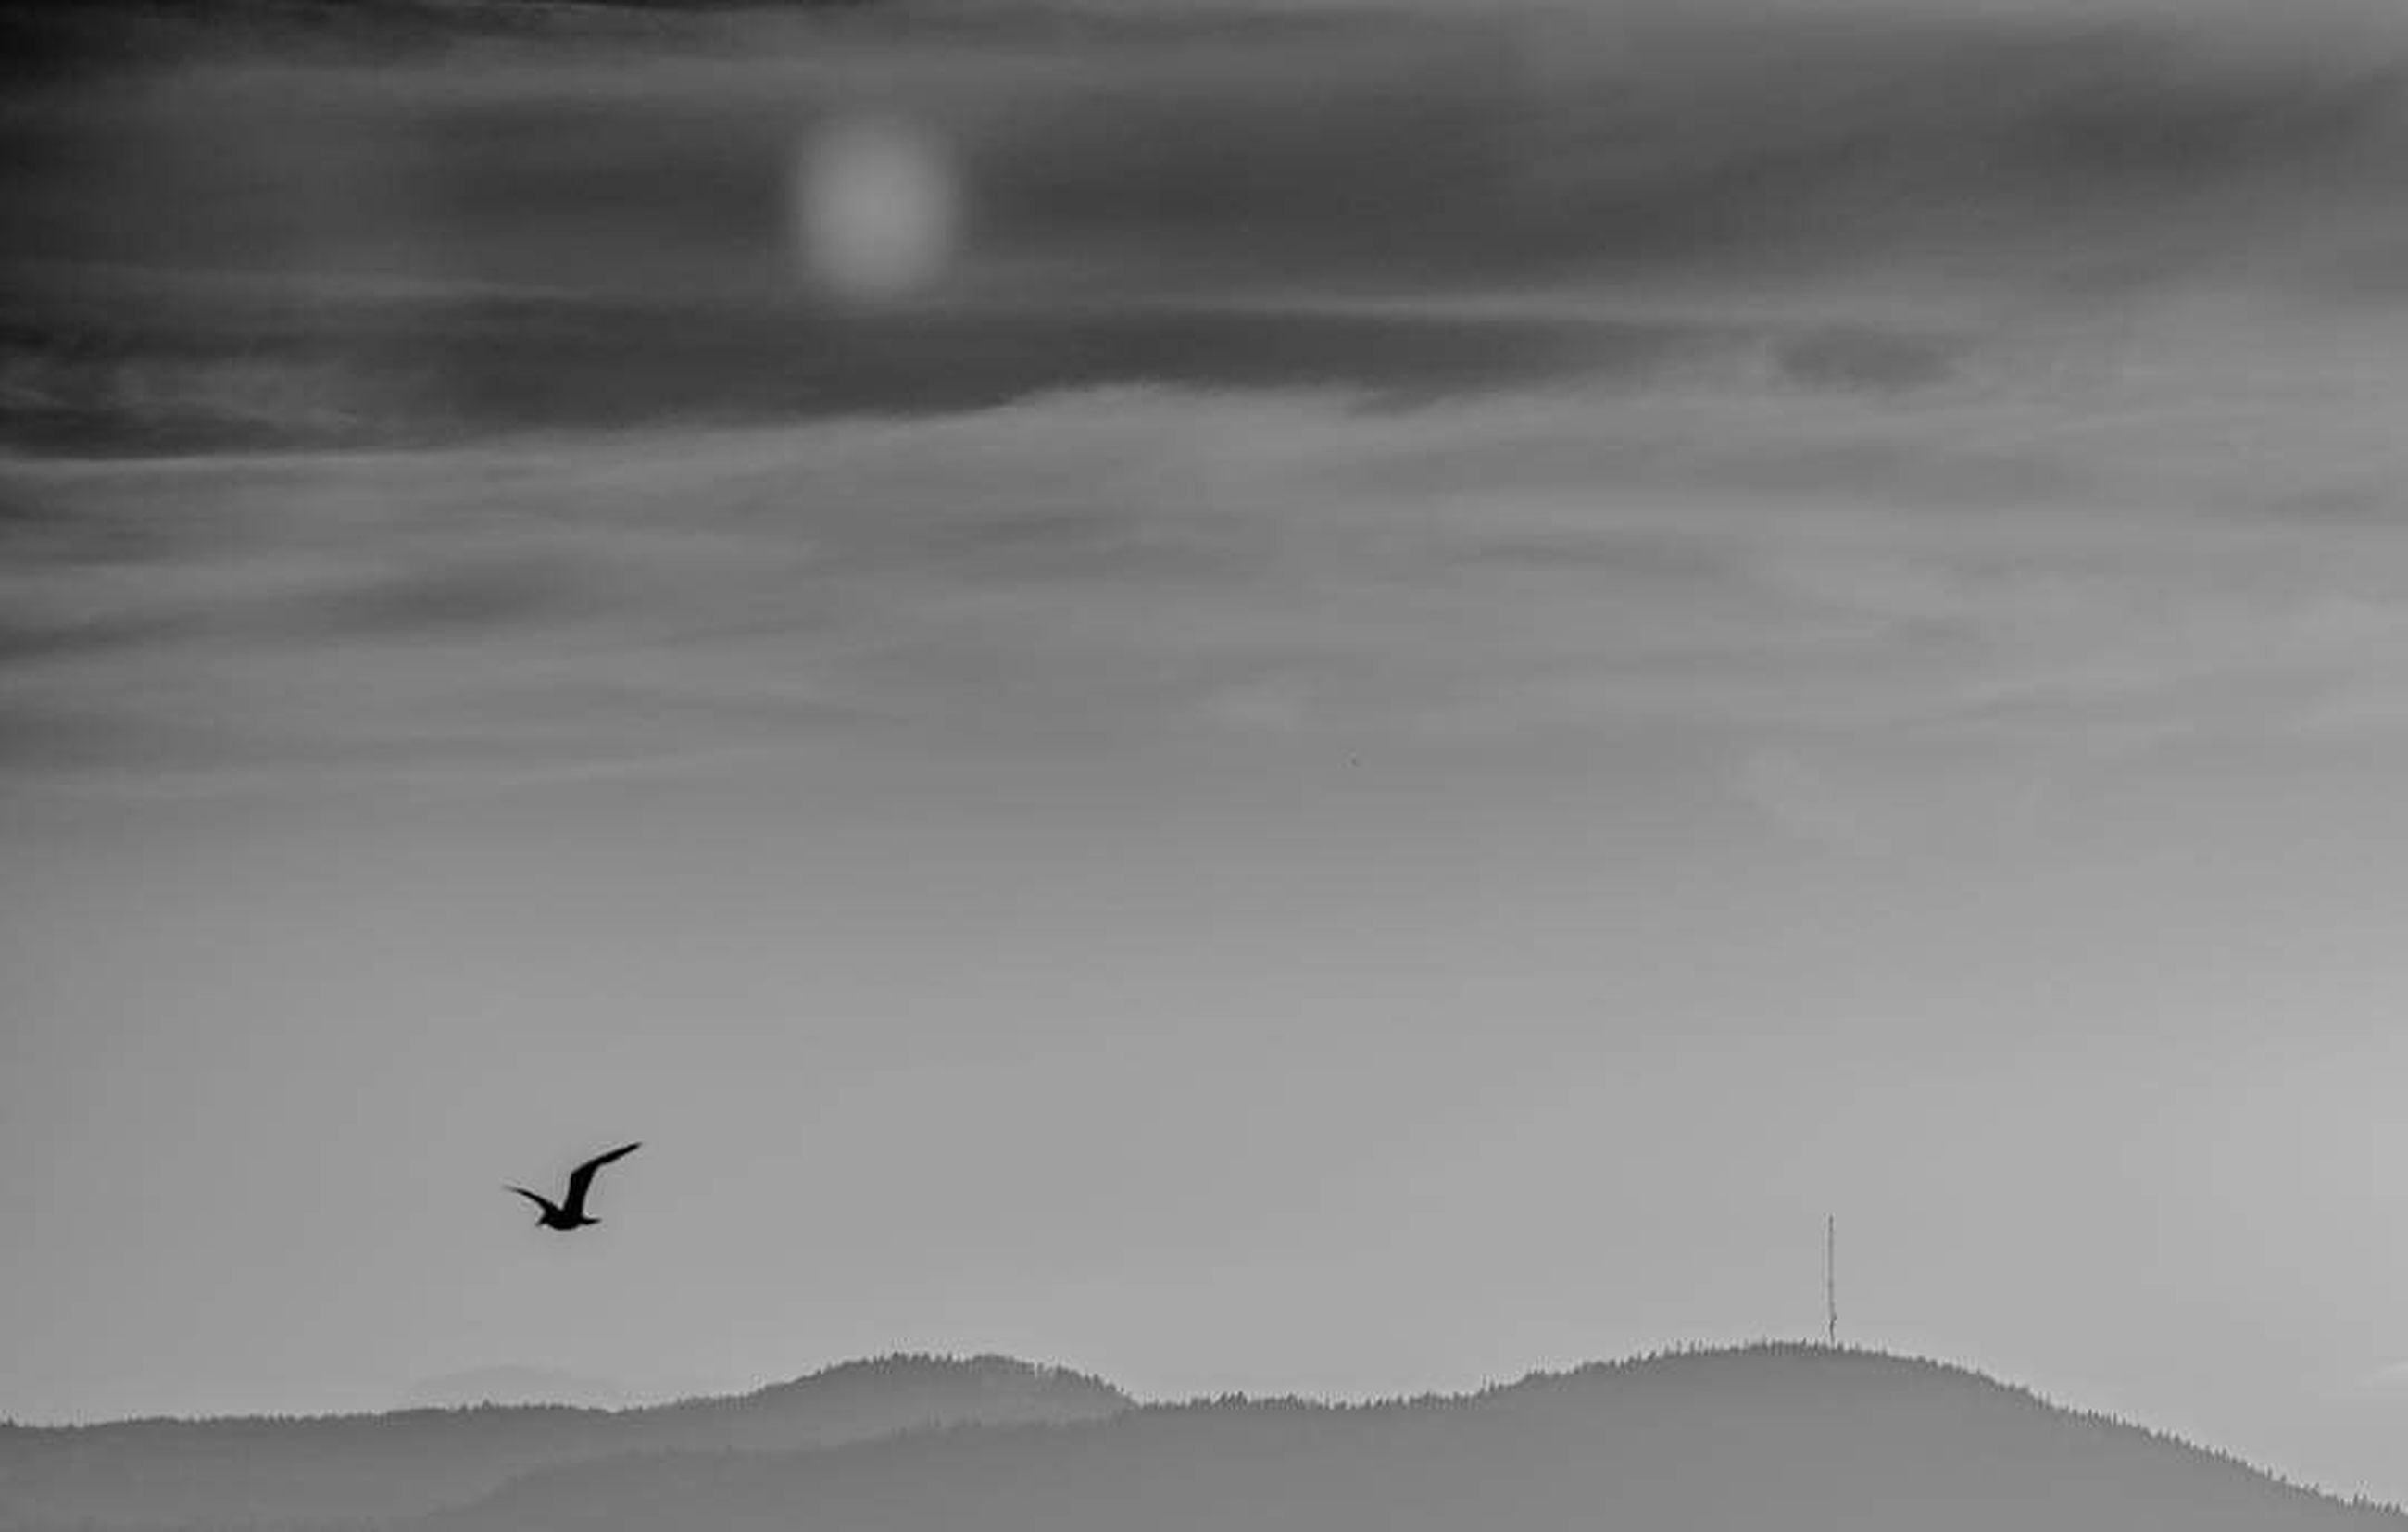 bird, vertebrate, animal themes, animals in the wild, animal, one animal, animal wildlife, flying, spread wings, mid-air, sky, beauty in nature, no people, scenics - nature, silhouette, tranquil scene, tranquility, cloud - sky, nature, water, outdoors, seagull